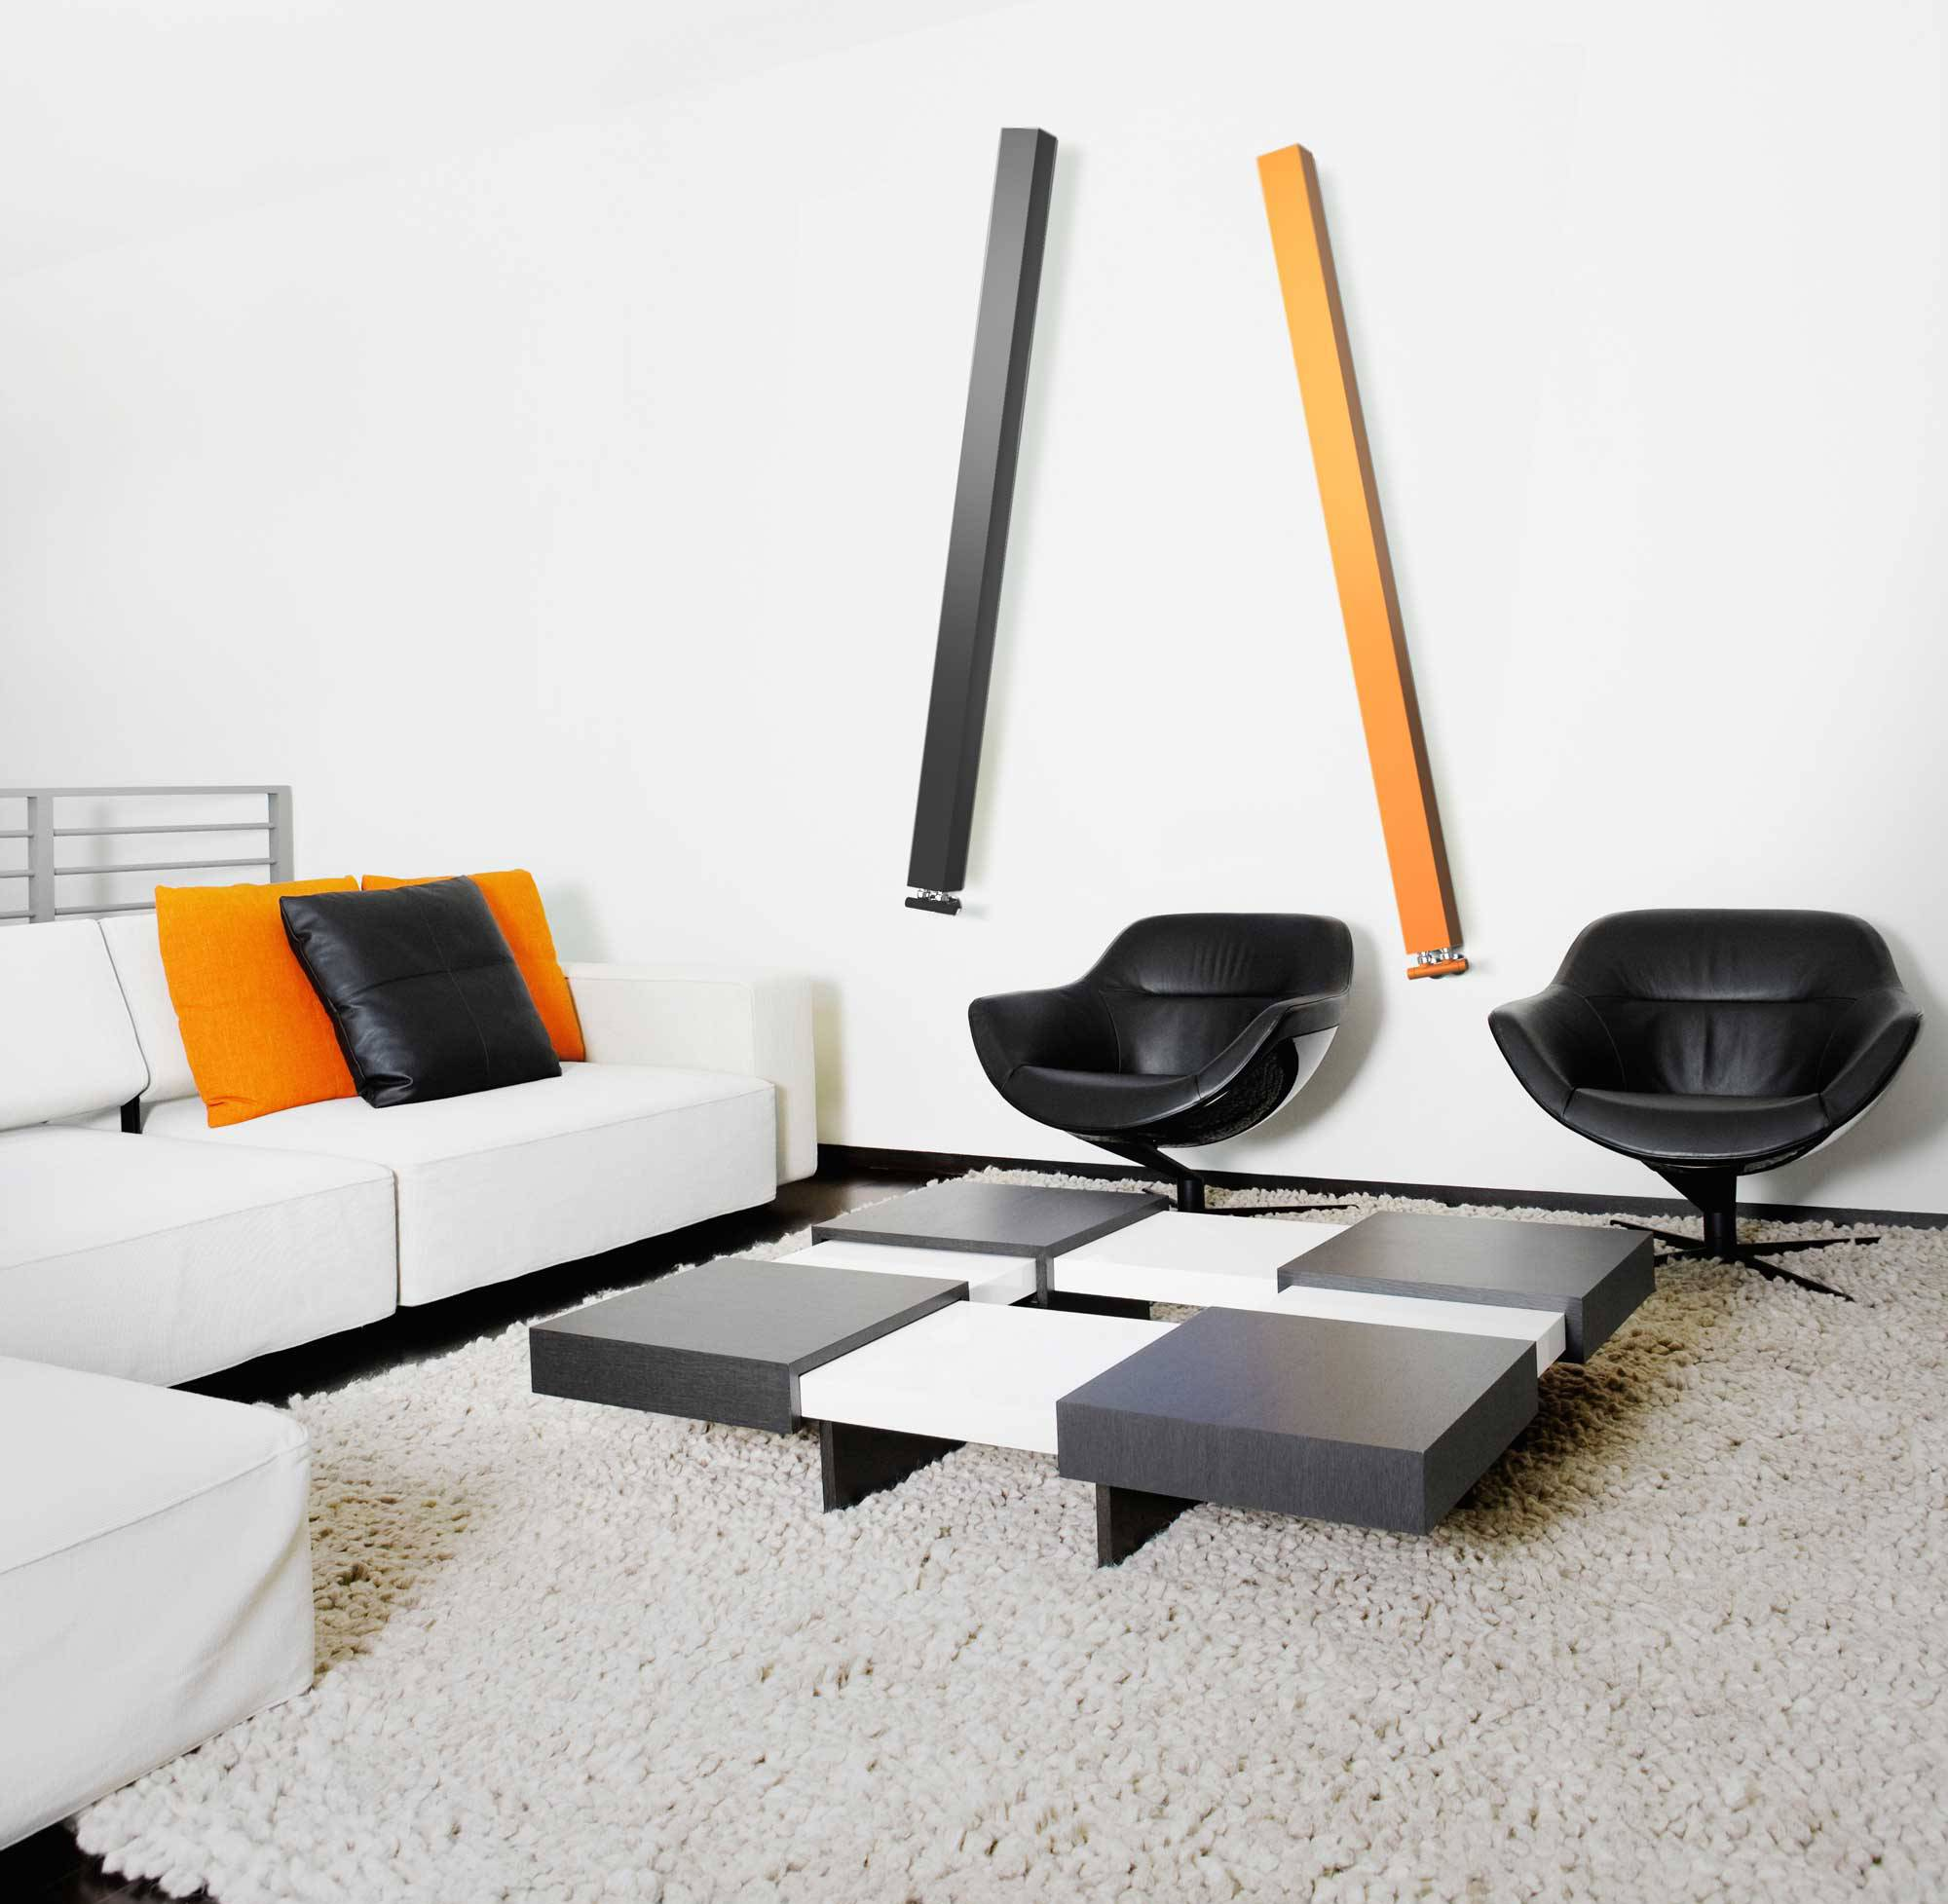 Termoarredo-lazzarini-ONETUBE_anthracite-and-yellow-living